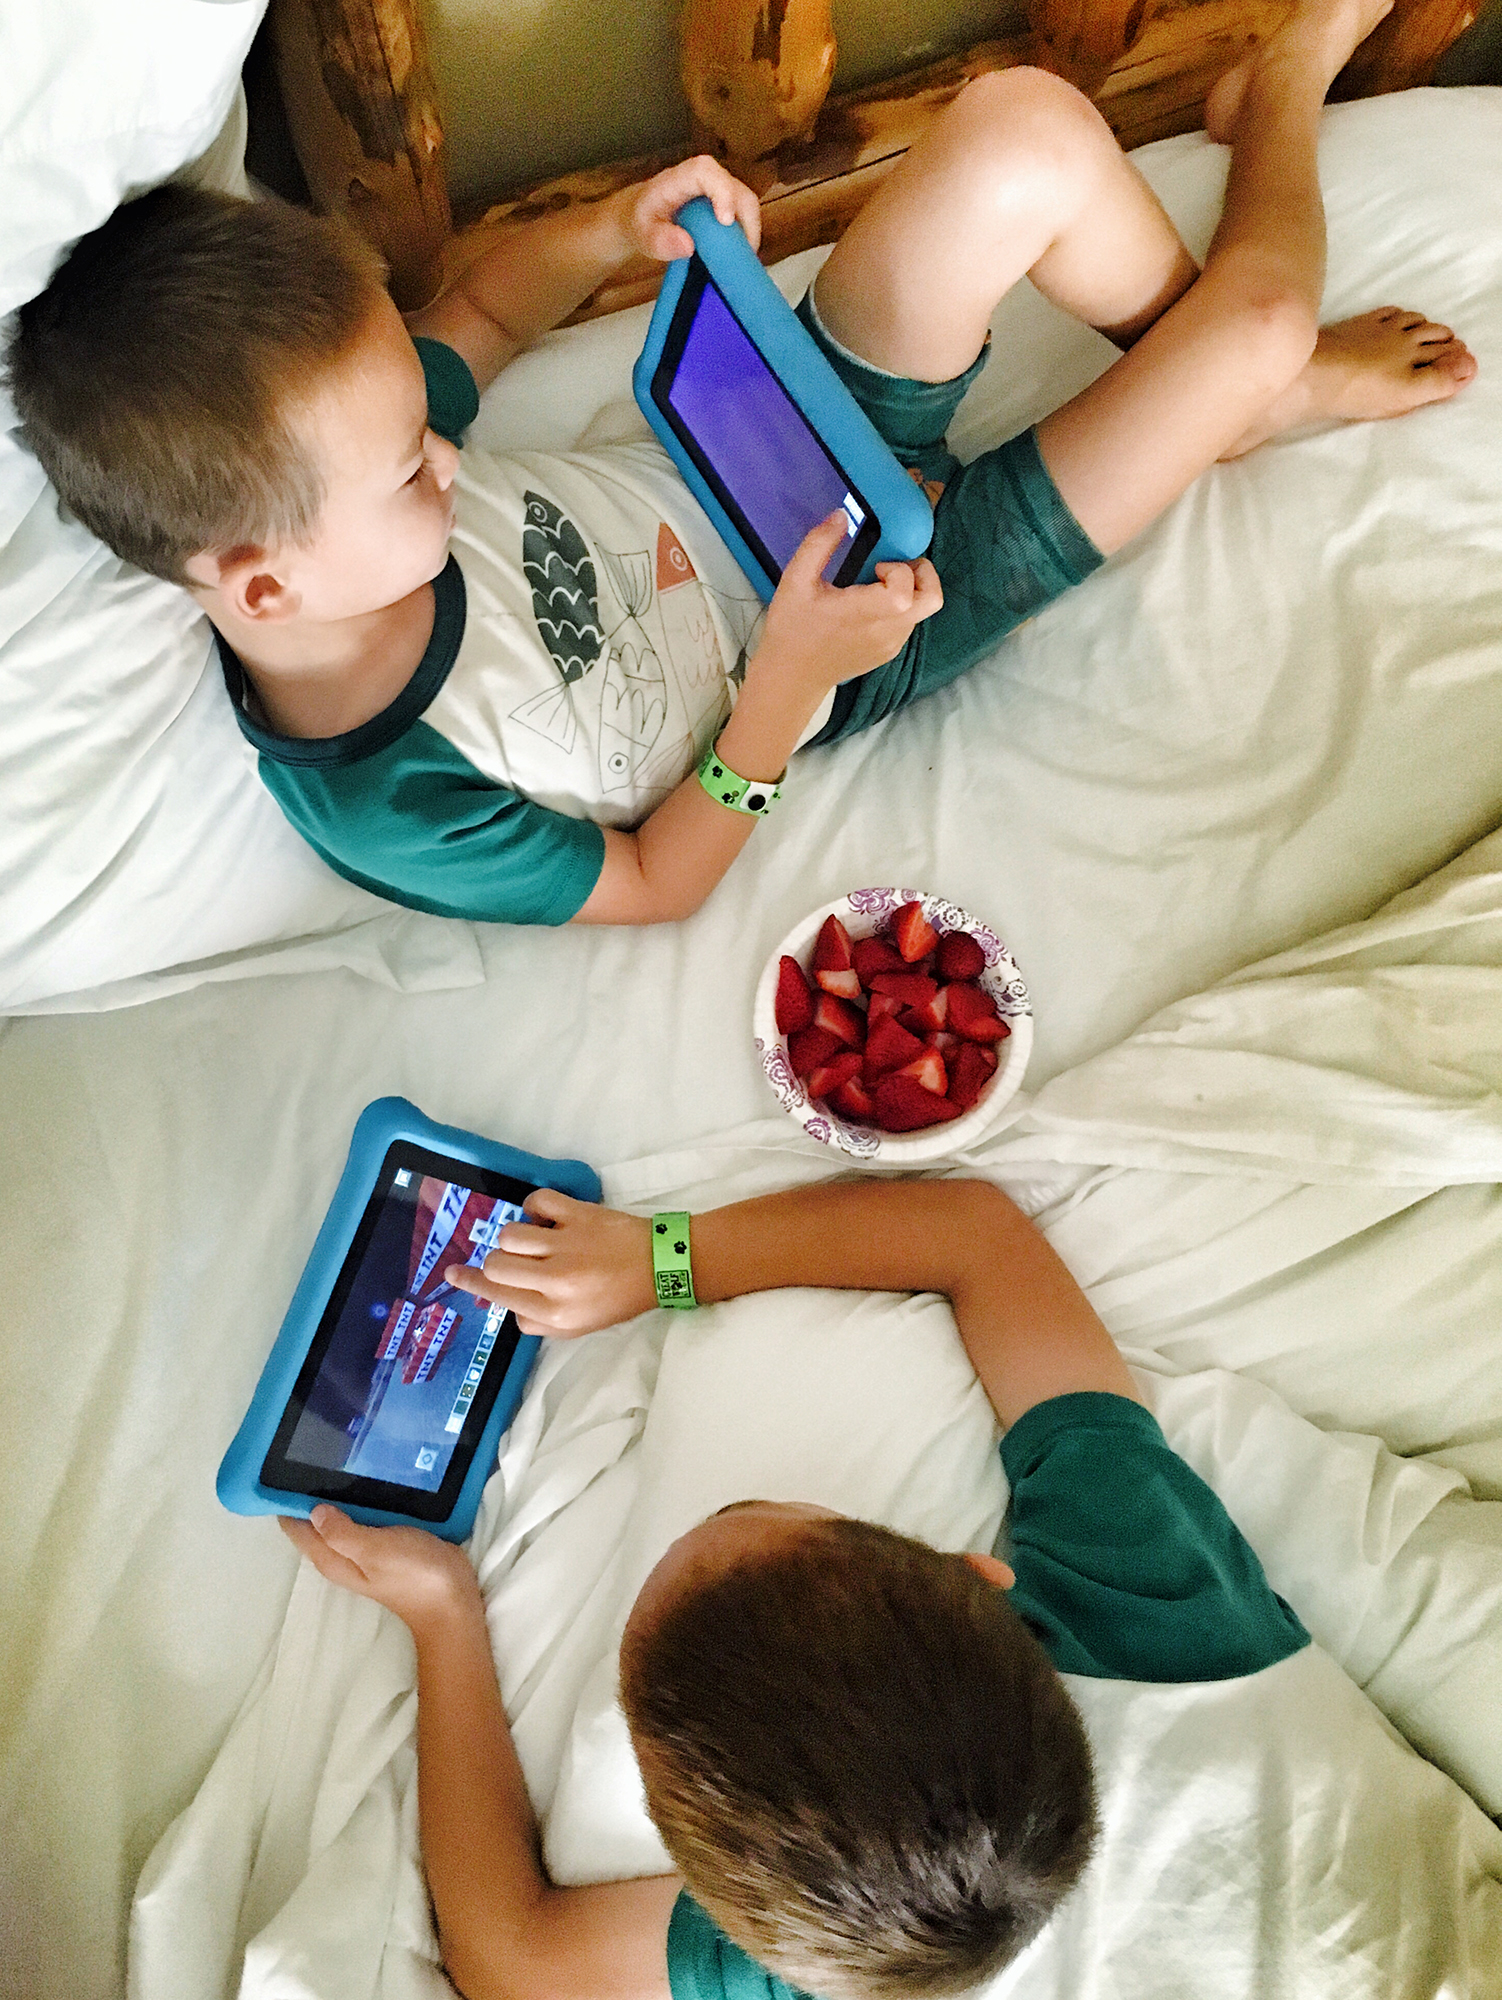 We recently let Jack start playing Minecraft... way younger than Liam did. He's growing up so fast!